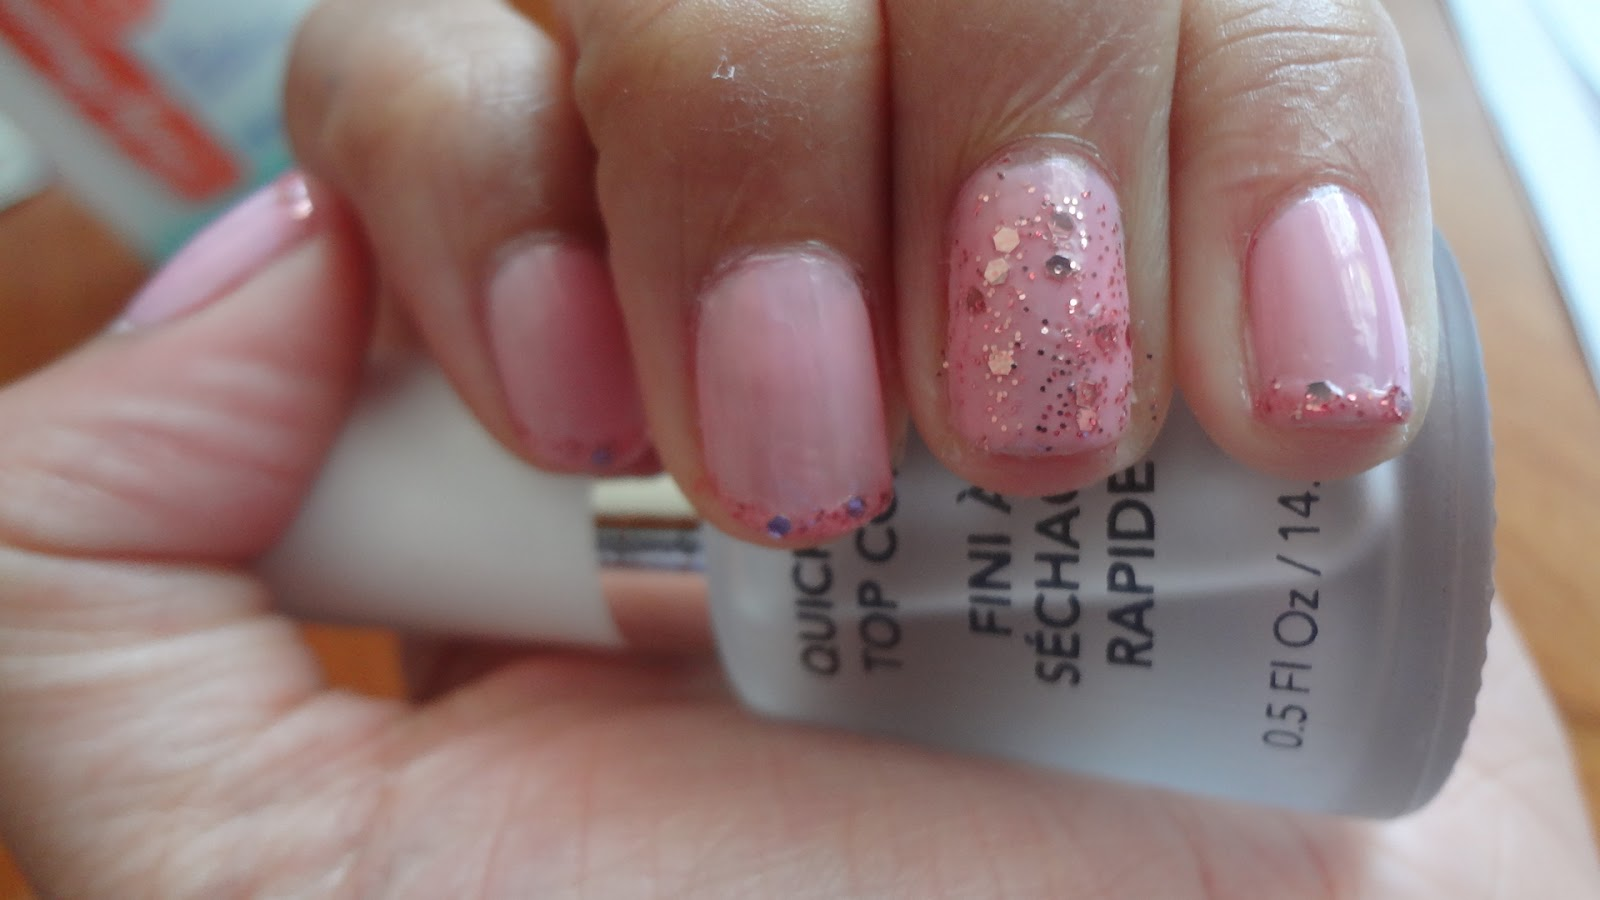 Ace Nails & Fashion: My First Nail Design - Prom Inspired